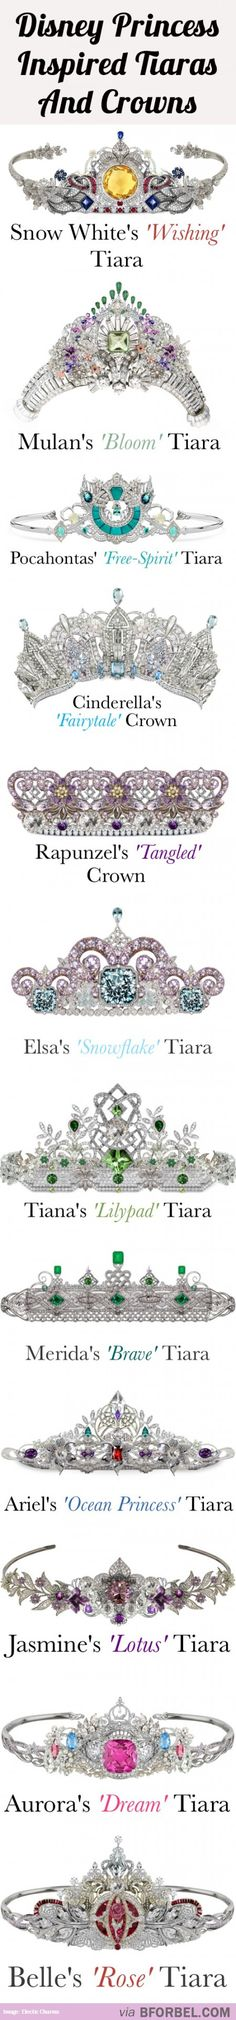 12 Disney Princess Tiaras And Crowns…All Set With Beautiful Diamonds, Gems Precious Stones. - I'll take the Cinderella, Rapunzel and of course Ariel tiara, please!